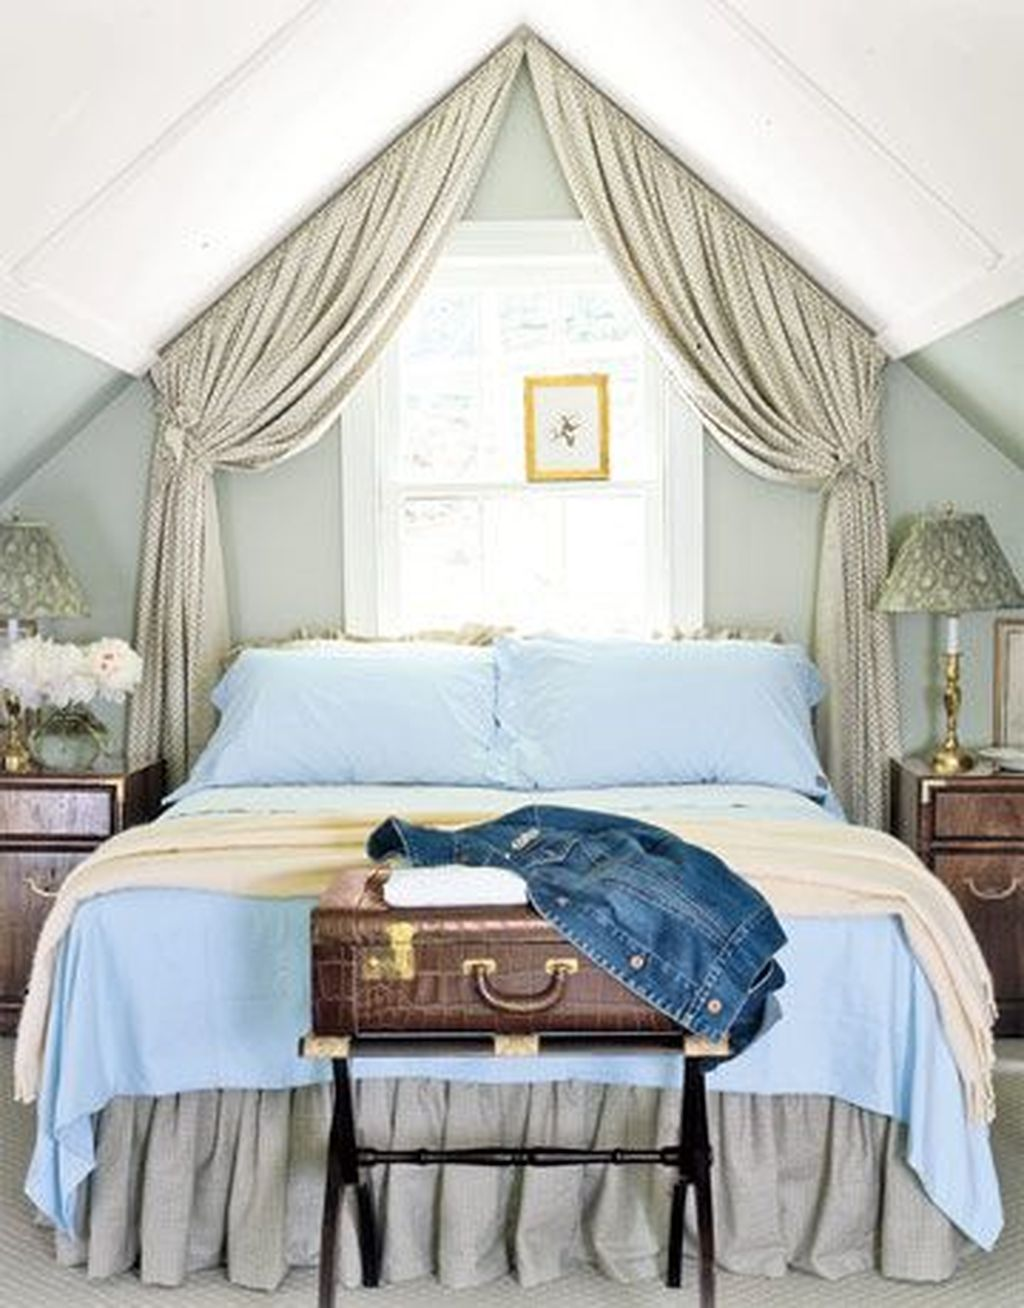 Bedroom ideas window behind bed   stunning small attic bedroom design ideas  guest room